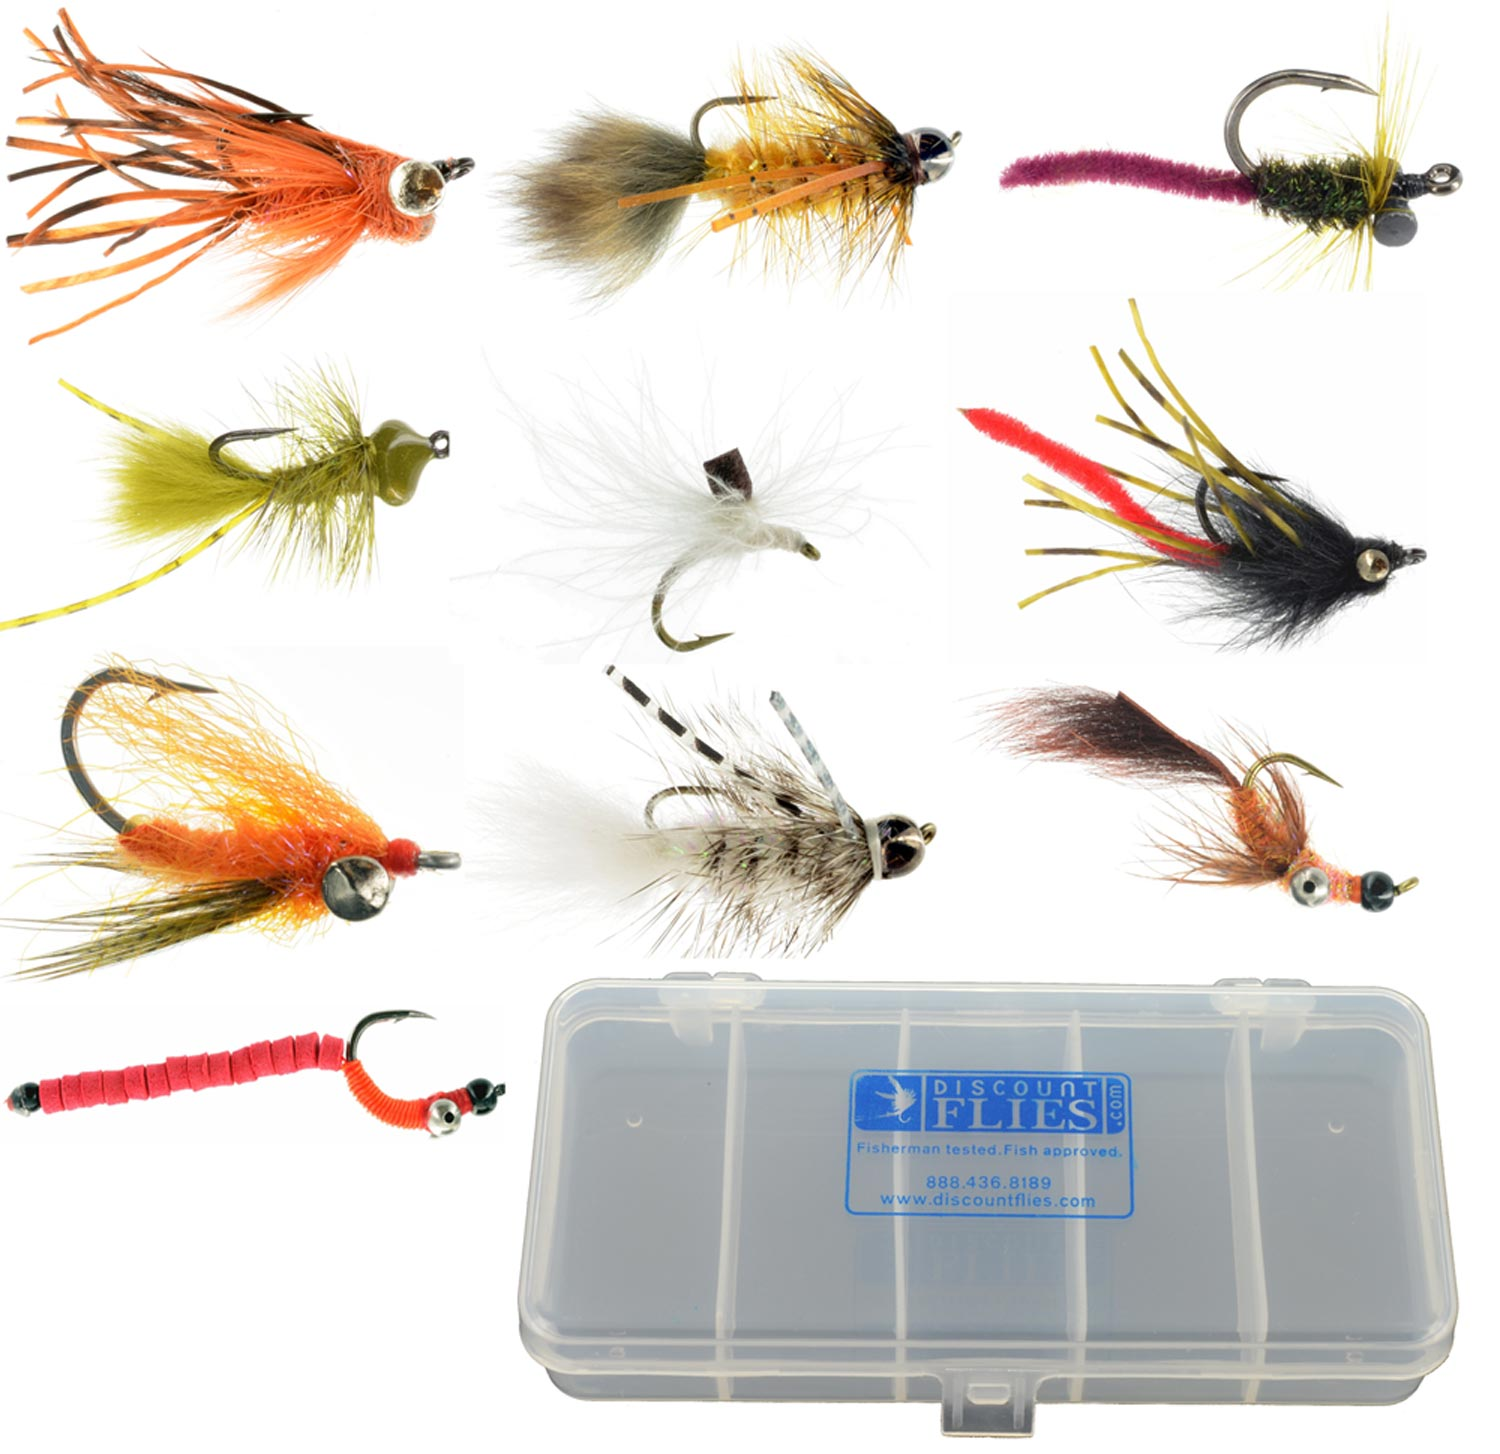 Wholesale Fly Fishing Flies: Packaged Fly Deals : Top Fly Fishing Flies & Gear At